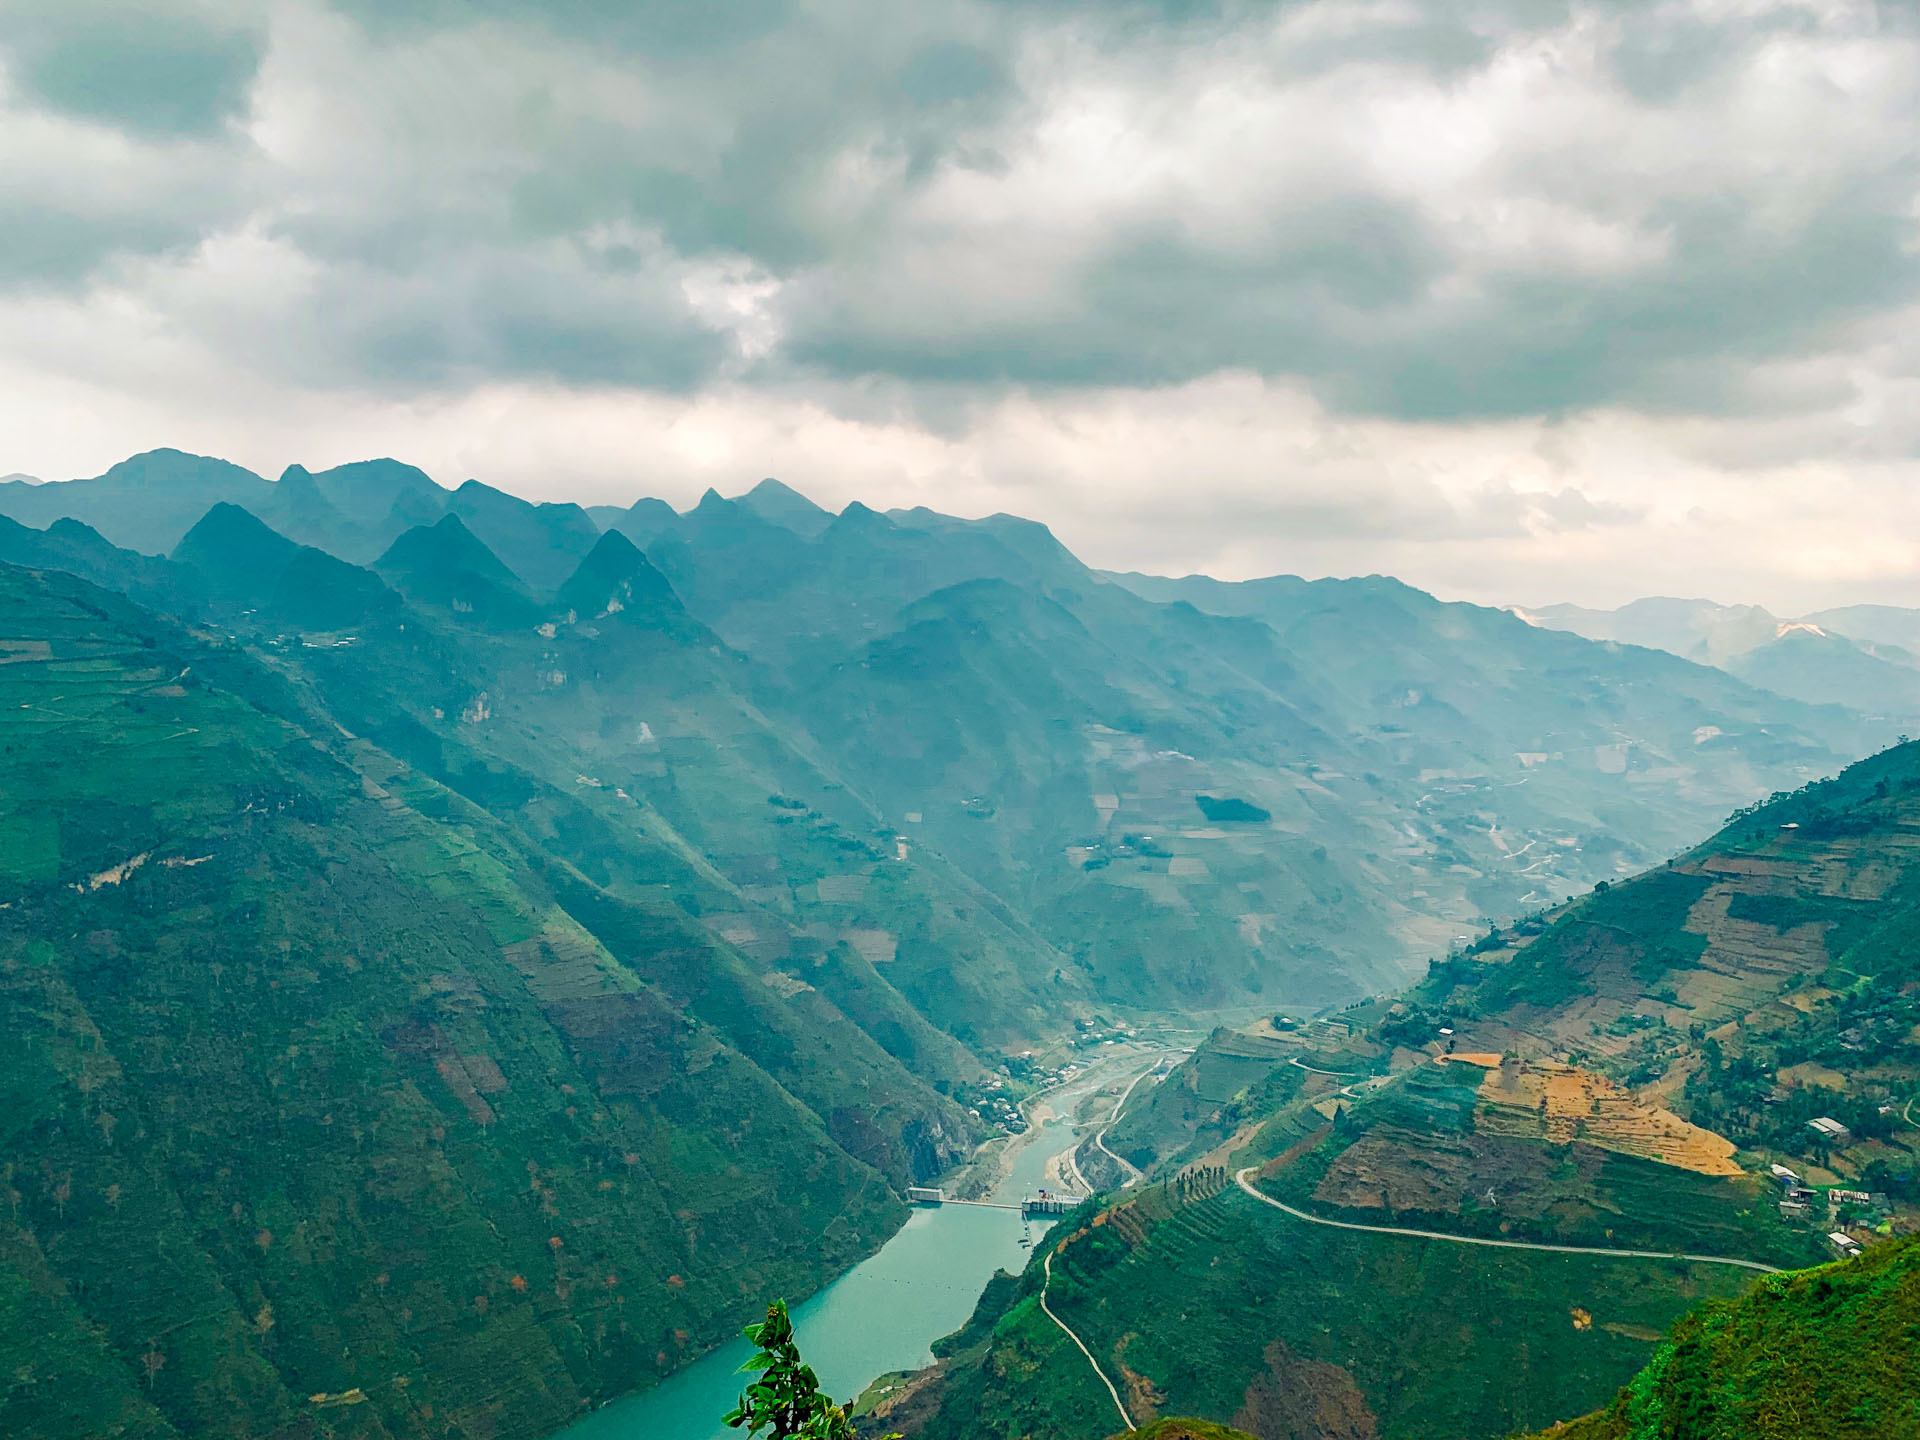 View of the canyon and Nho Que River from the Ma Pi Leng moutain pass in Ha Giang Province, Vietnam. Photo: Tran Phuong / Tuoi Tre